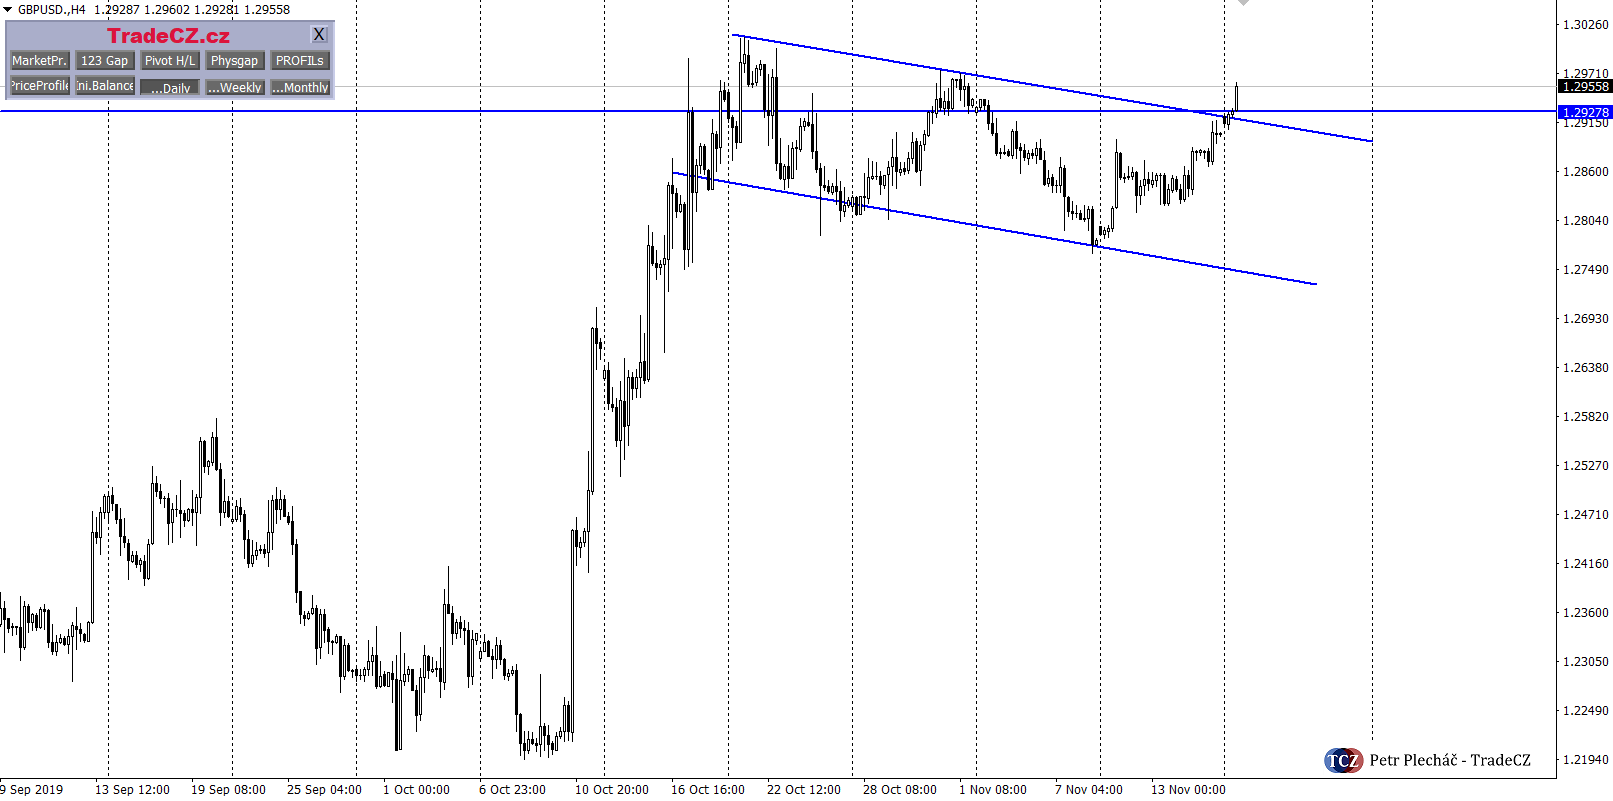 GBPUSD price action